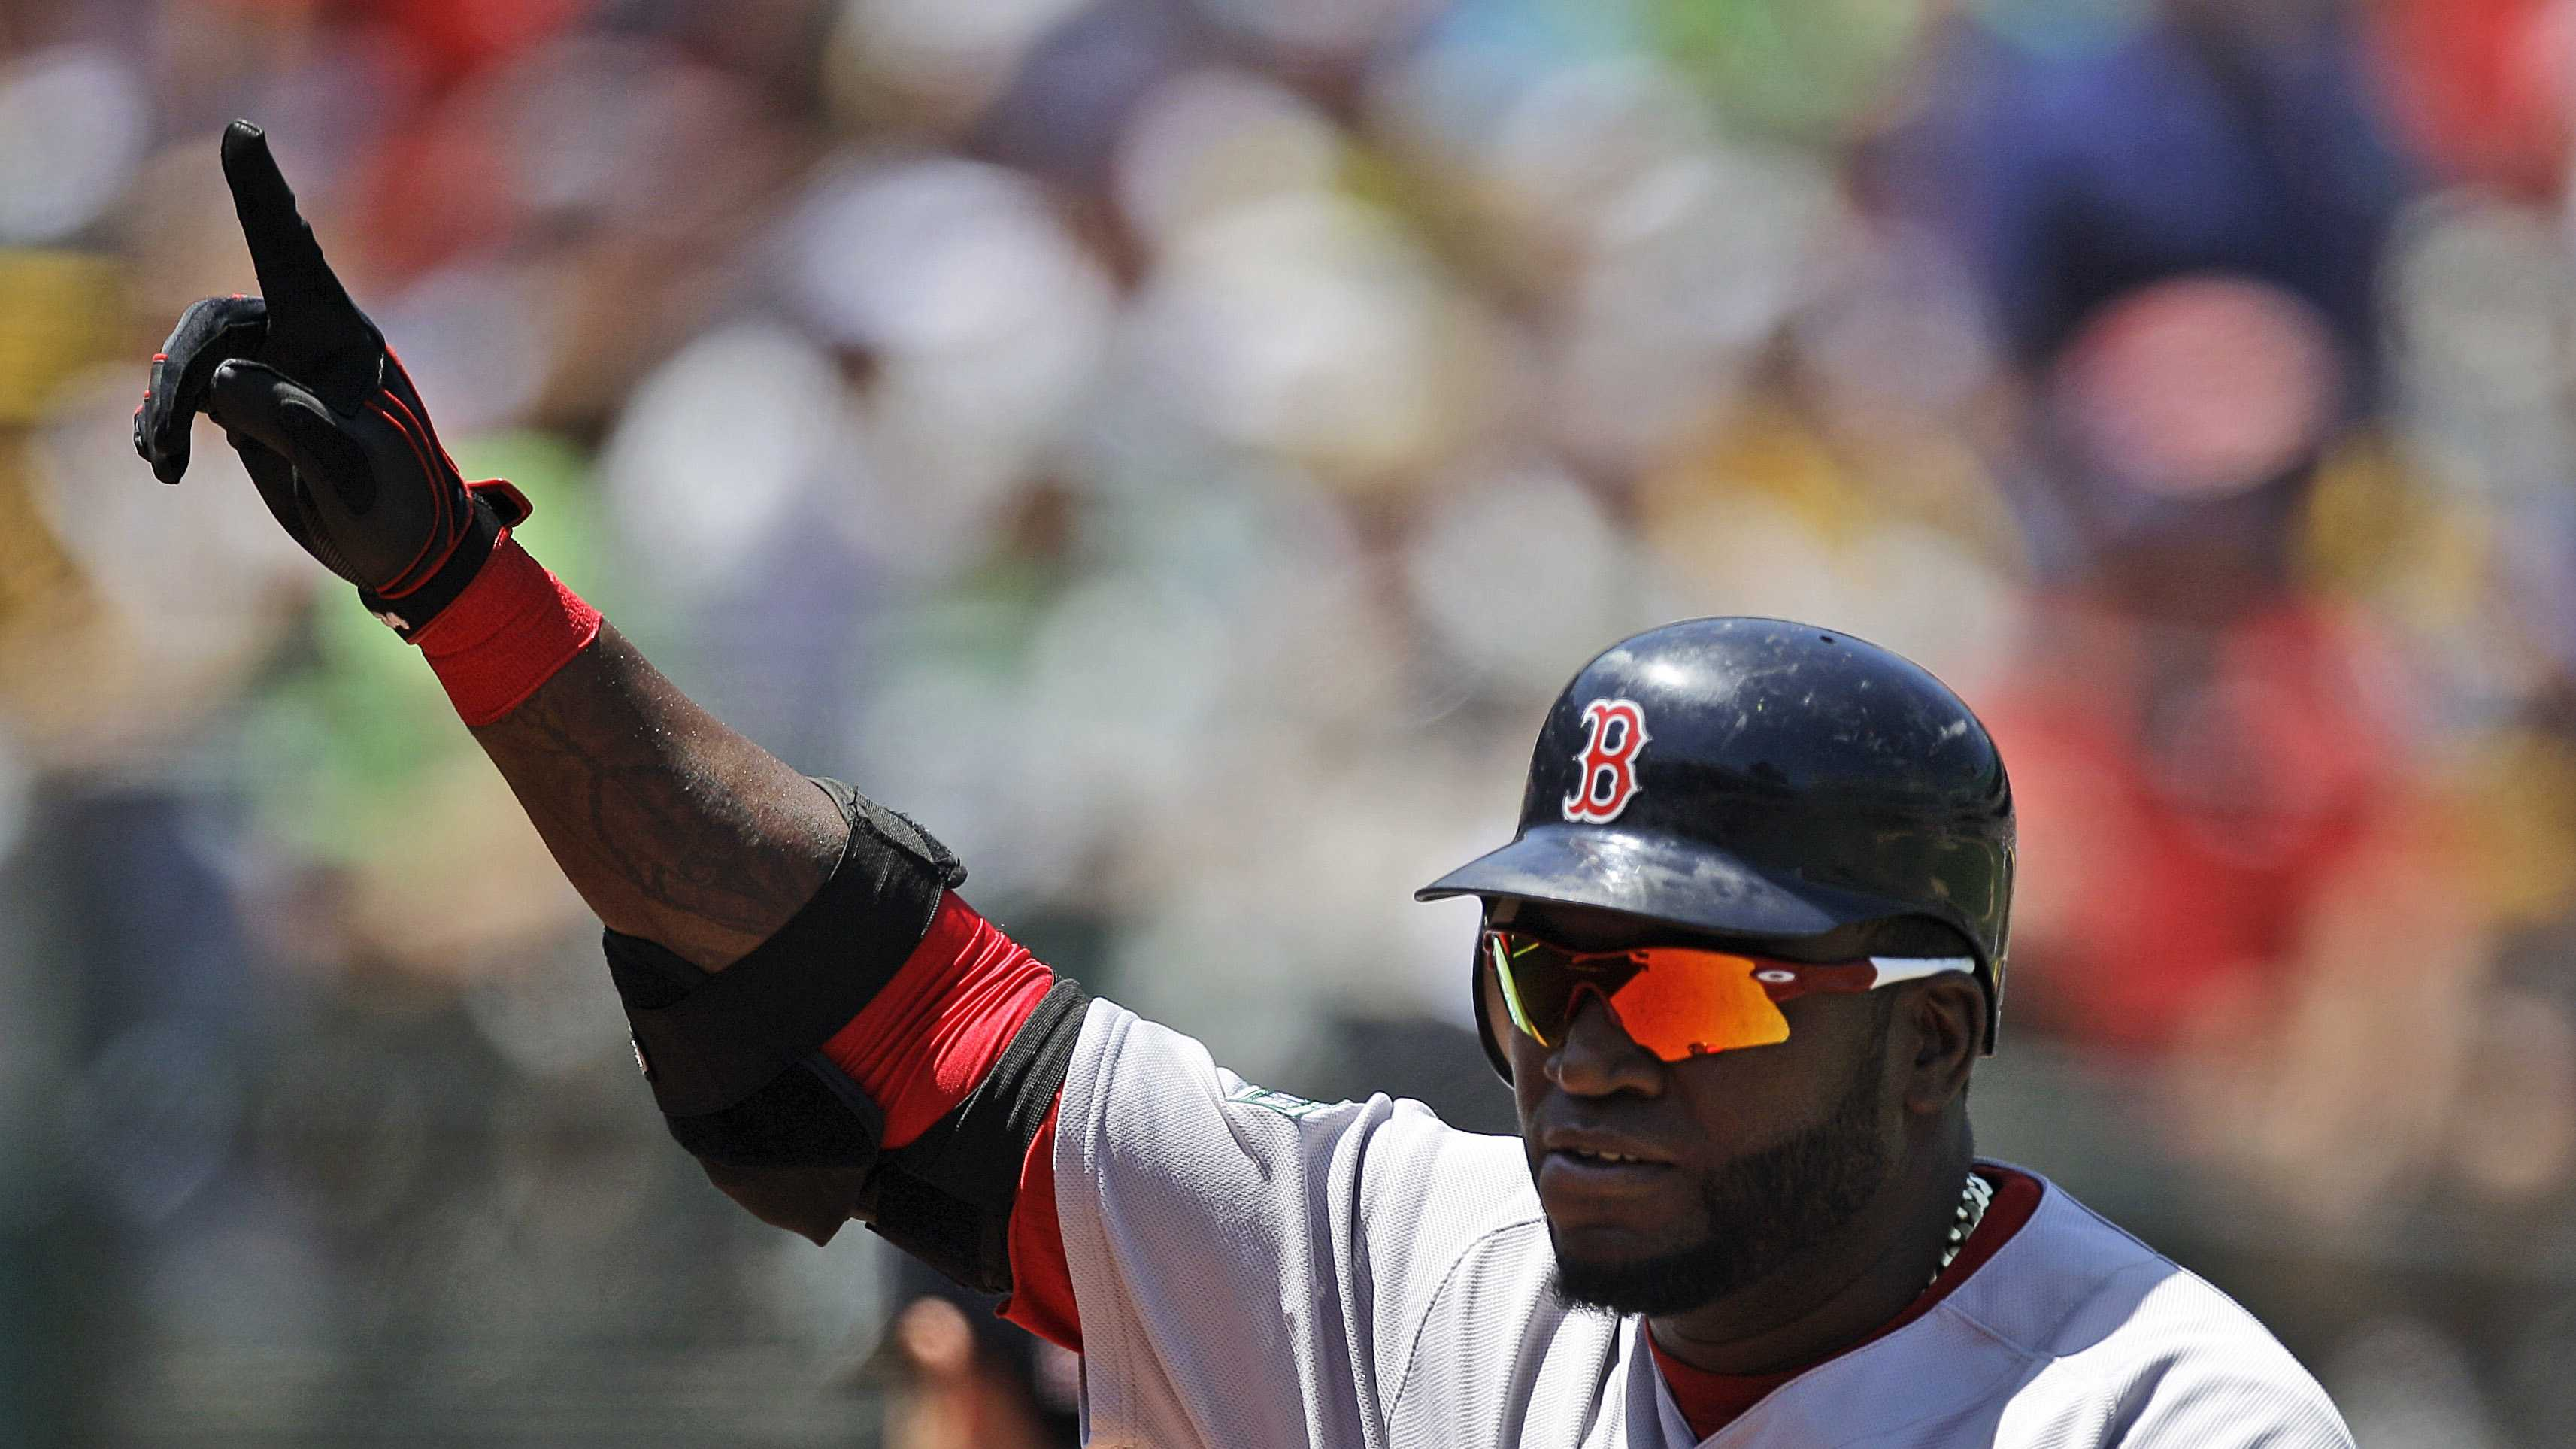 David Ortiz gestures after hitting his 400th career home run off Oakland Athletics' A.J. Griffin in the fourth inning, July 4, 2012.